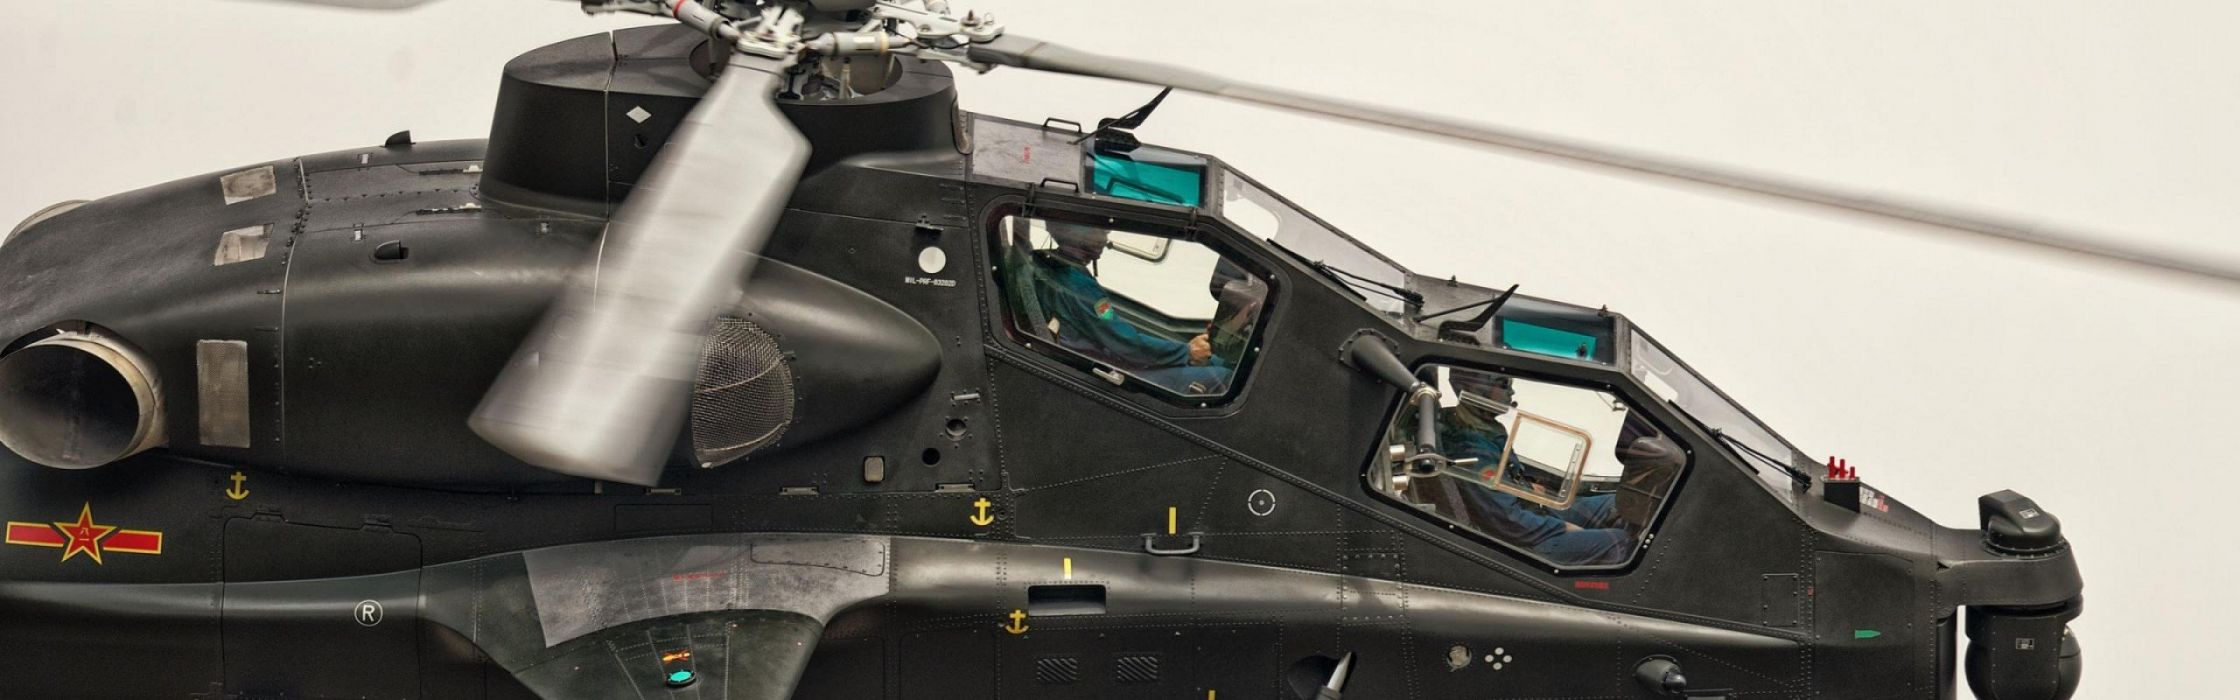 Z-10 attack helicopter china aircraft military (30) wallpaper